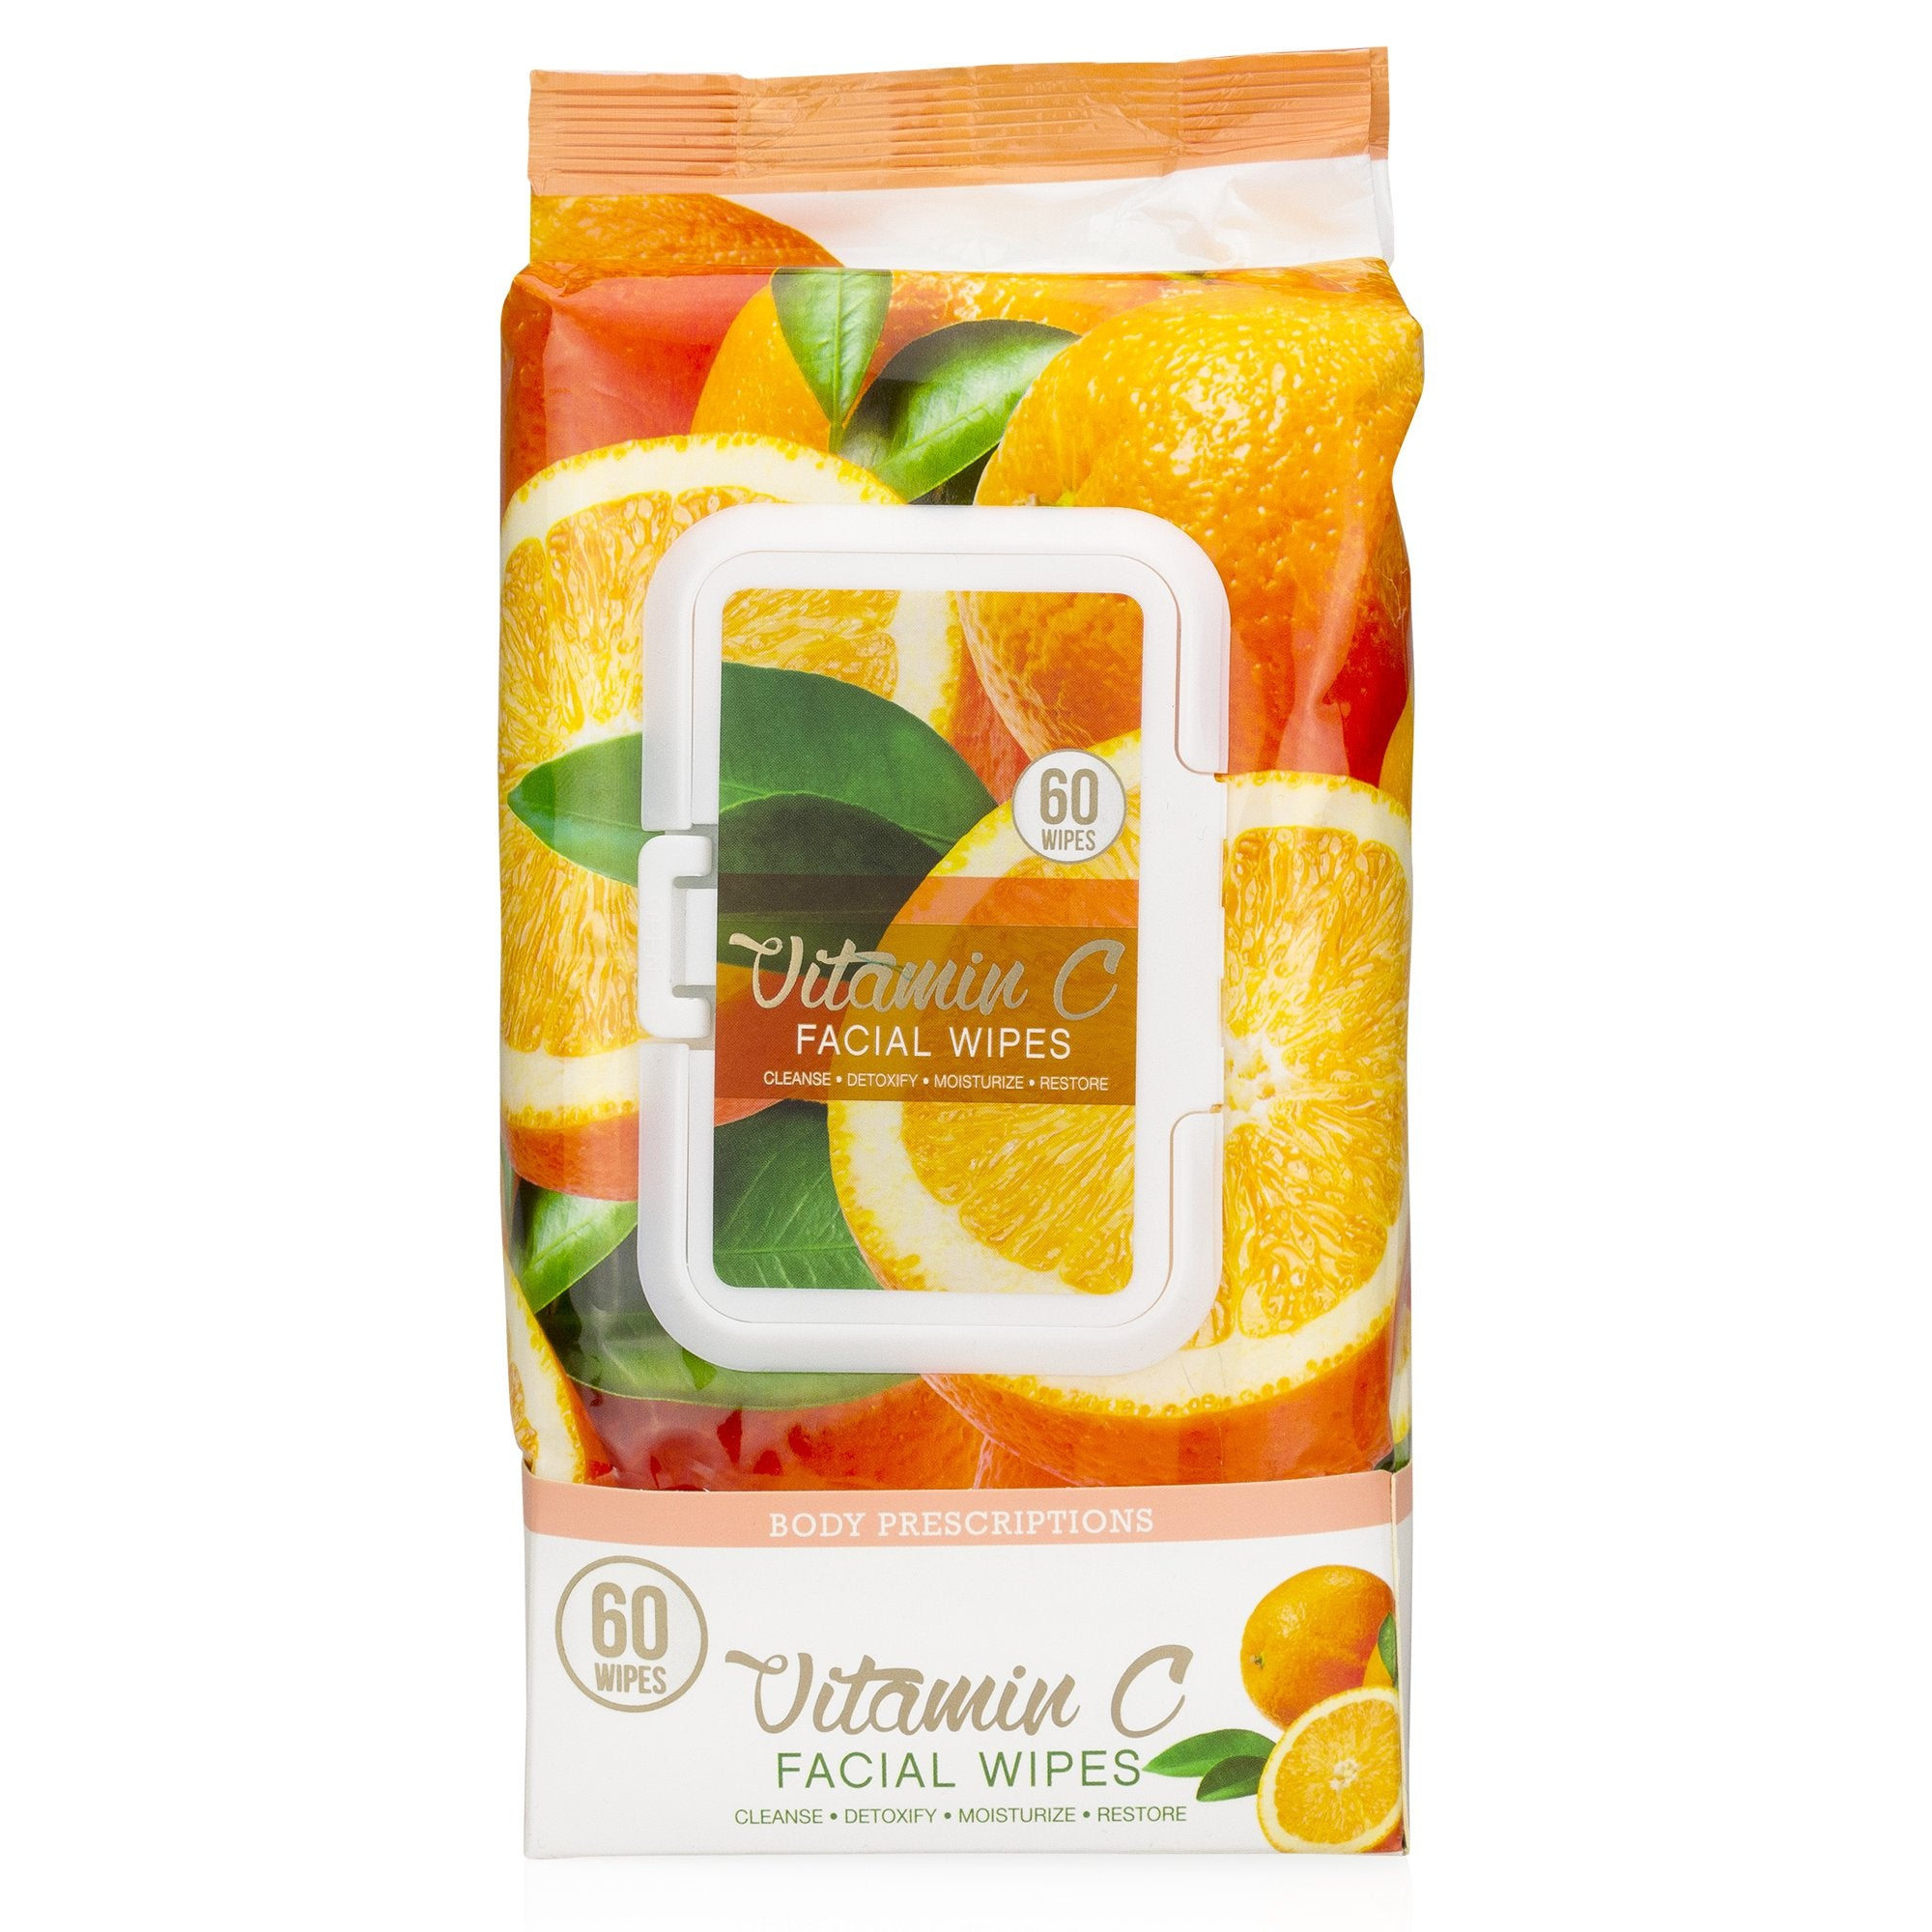 Body Prescriptions -2 Pack (60 Count Each) Vitamin C Facial Cleansing Wipes